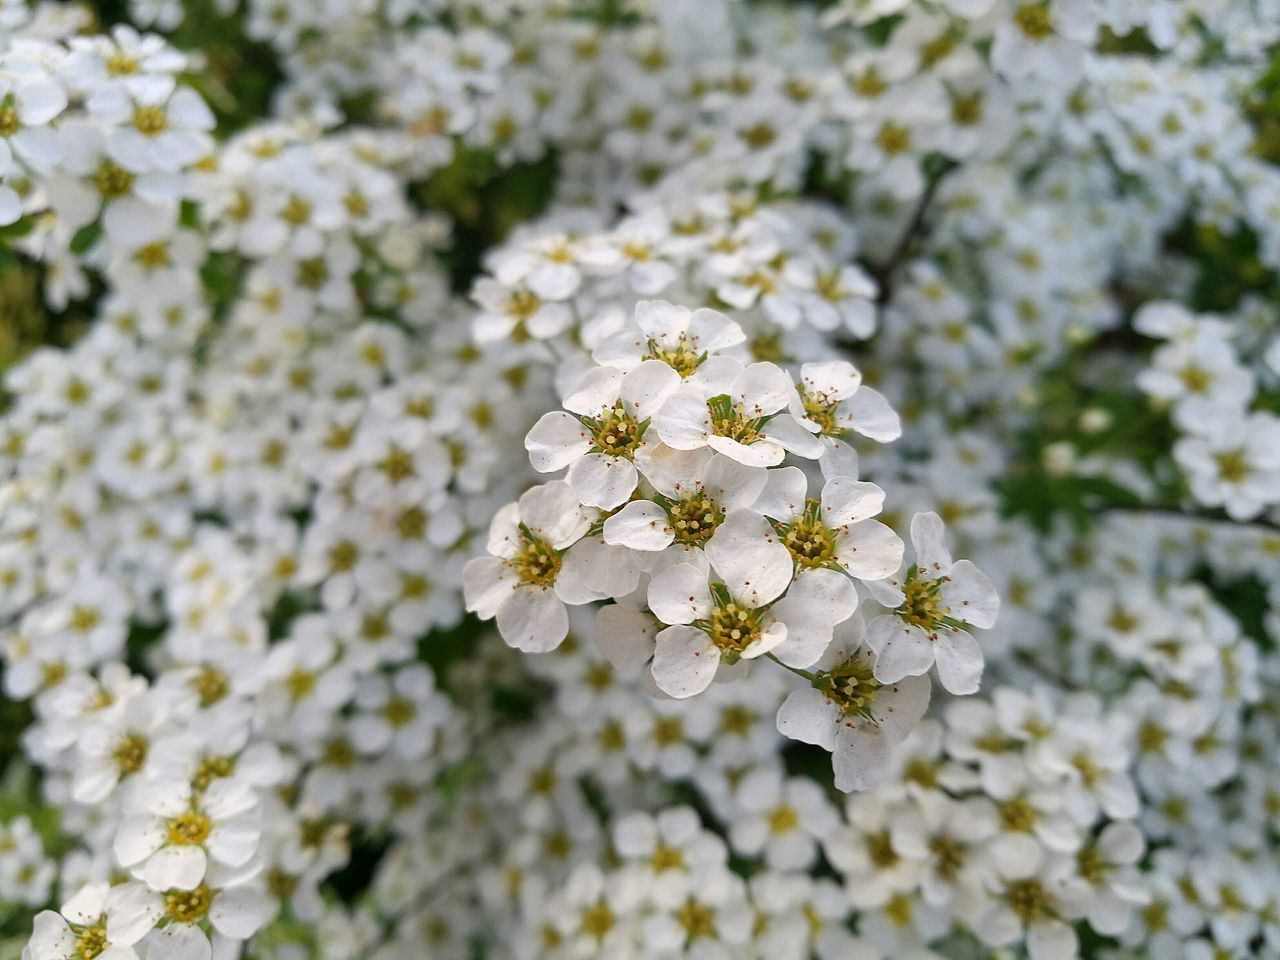 Springtime Blossoms Hawthorn Hawthorn Blossom Hedgerow Plant Hedgerow Blossom Close-up Petals Outdoors Freshness Botany Fragility White Color Focus On Foreground Springtime Flower Flower Head Nature Beauty In Nature Plant Growth Sun On A Flower P9 Huawei Spring Photography Blossoms